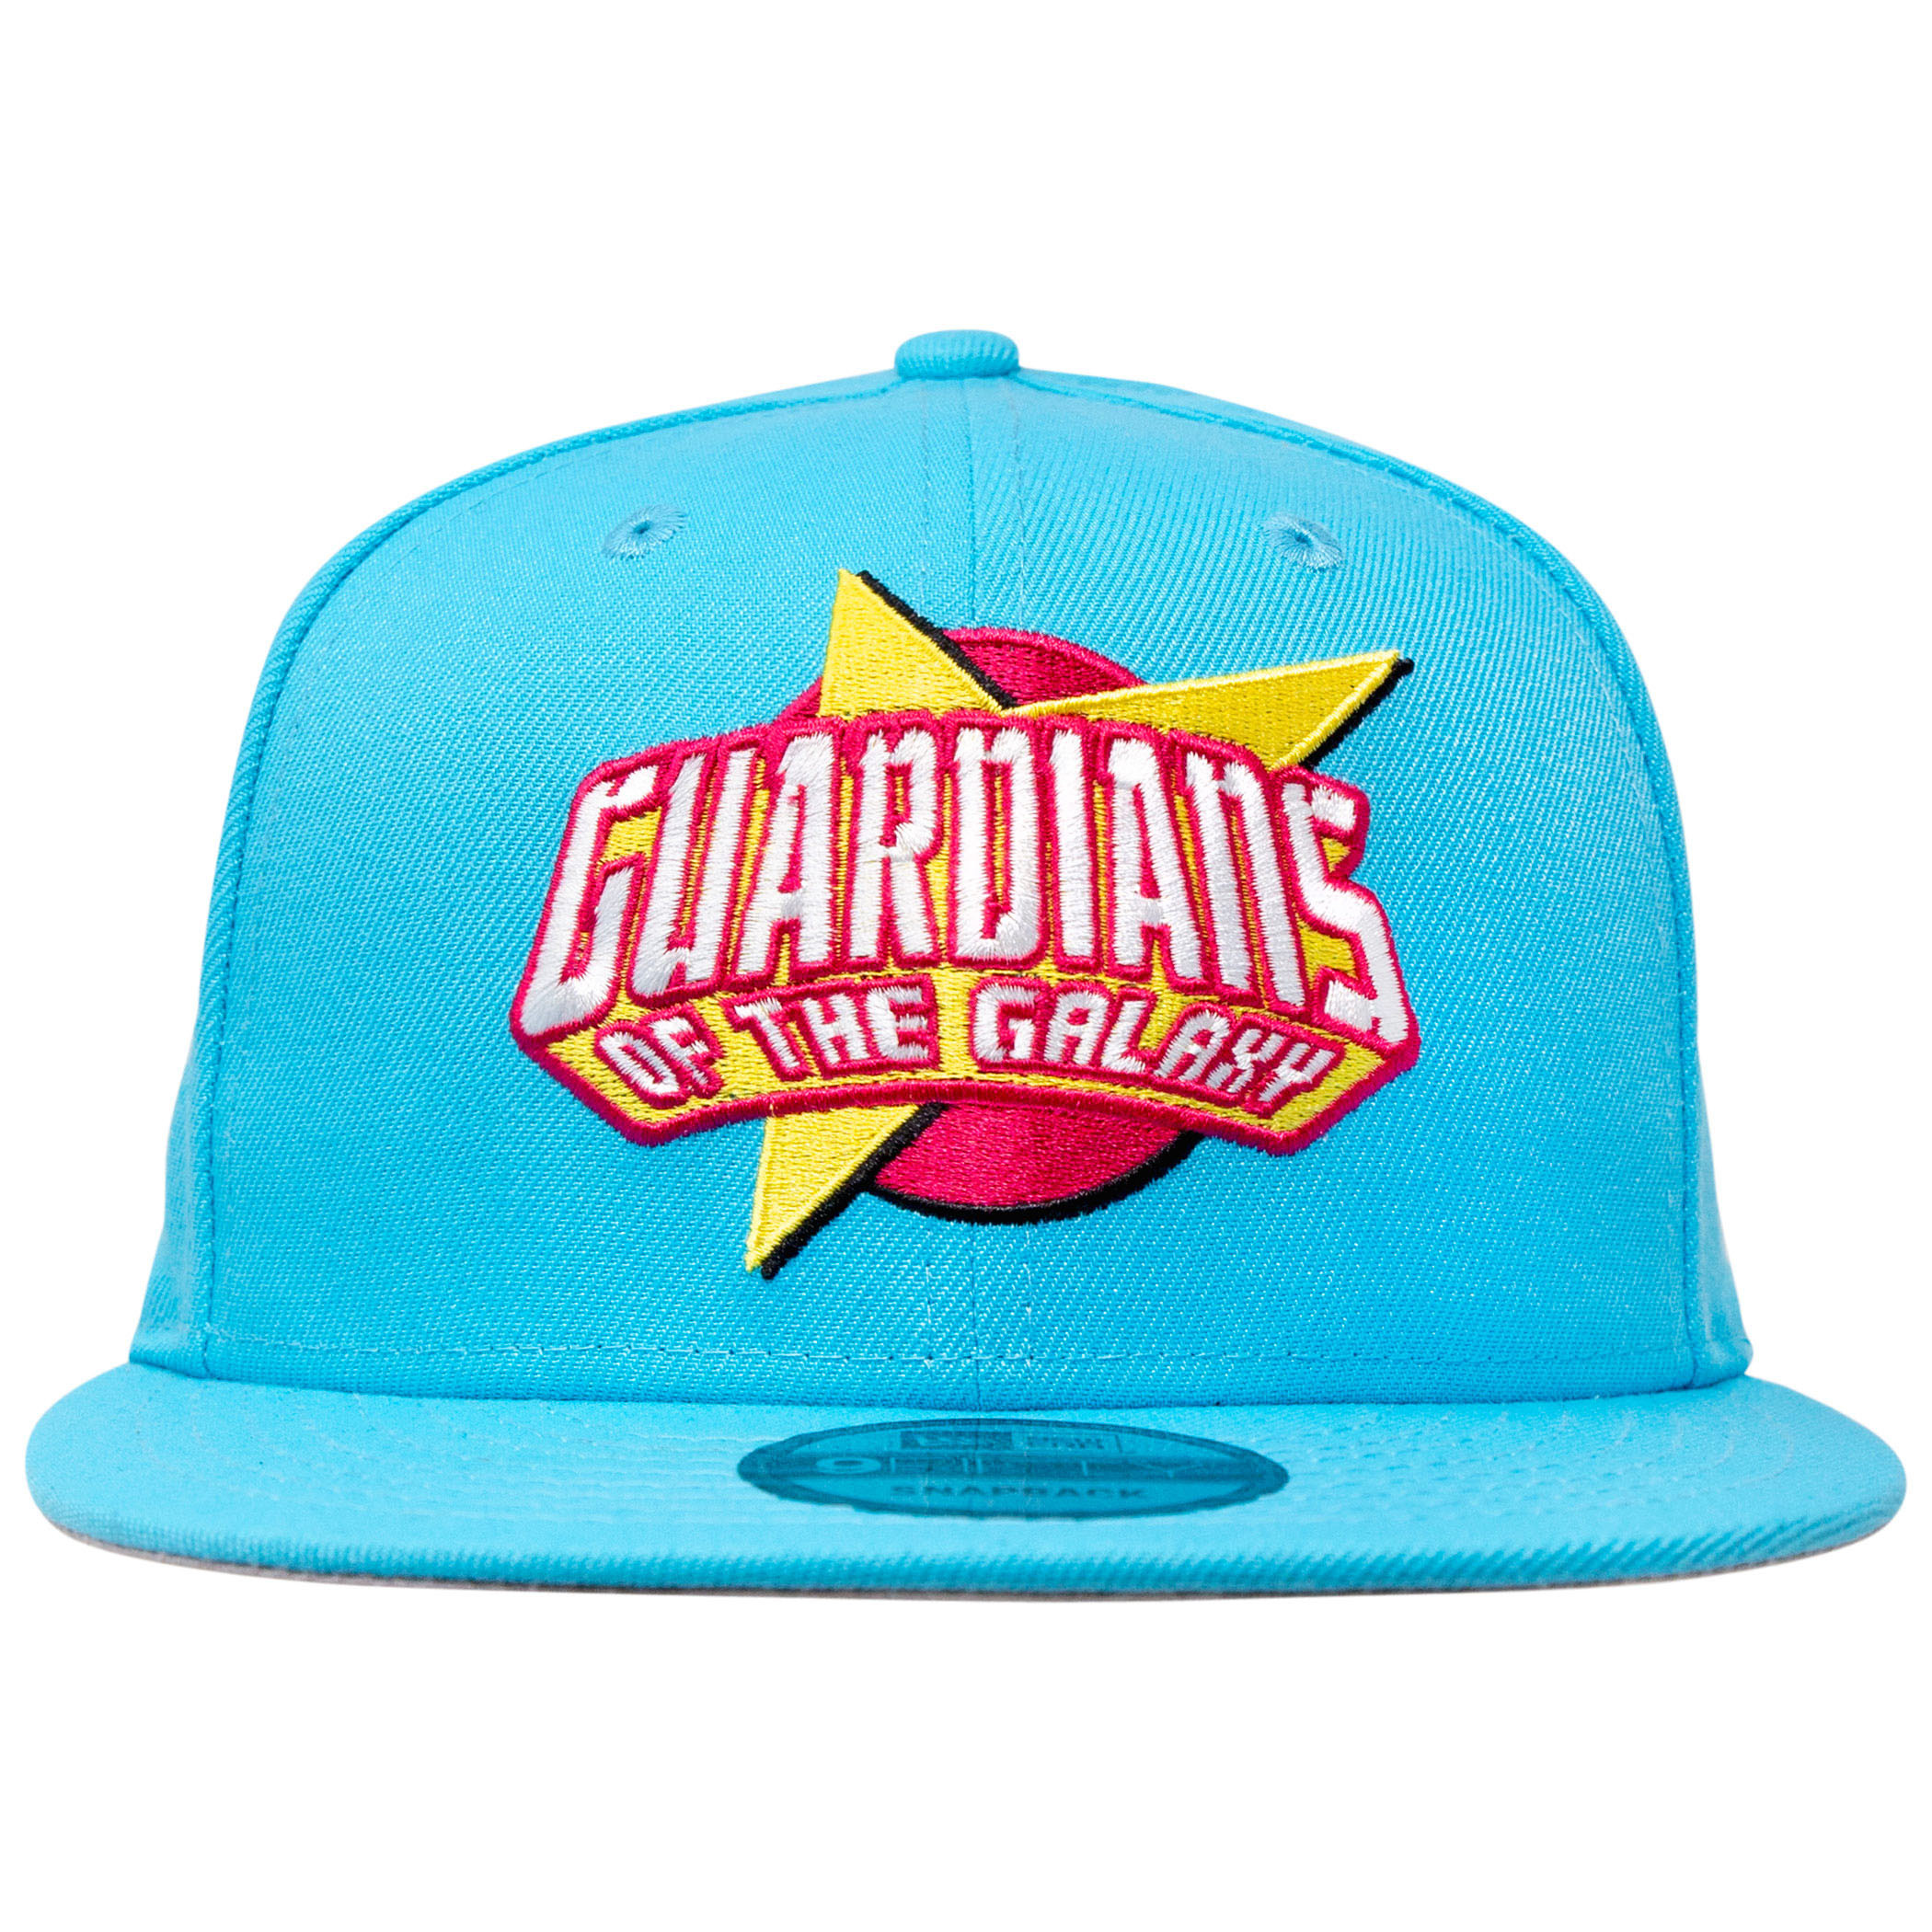 Guardians of the Galaxy Marvel 8oth New Era 9Fifty Adjustable Hat